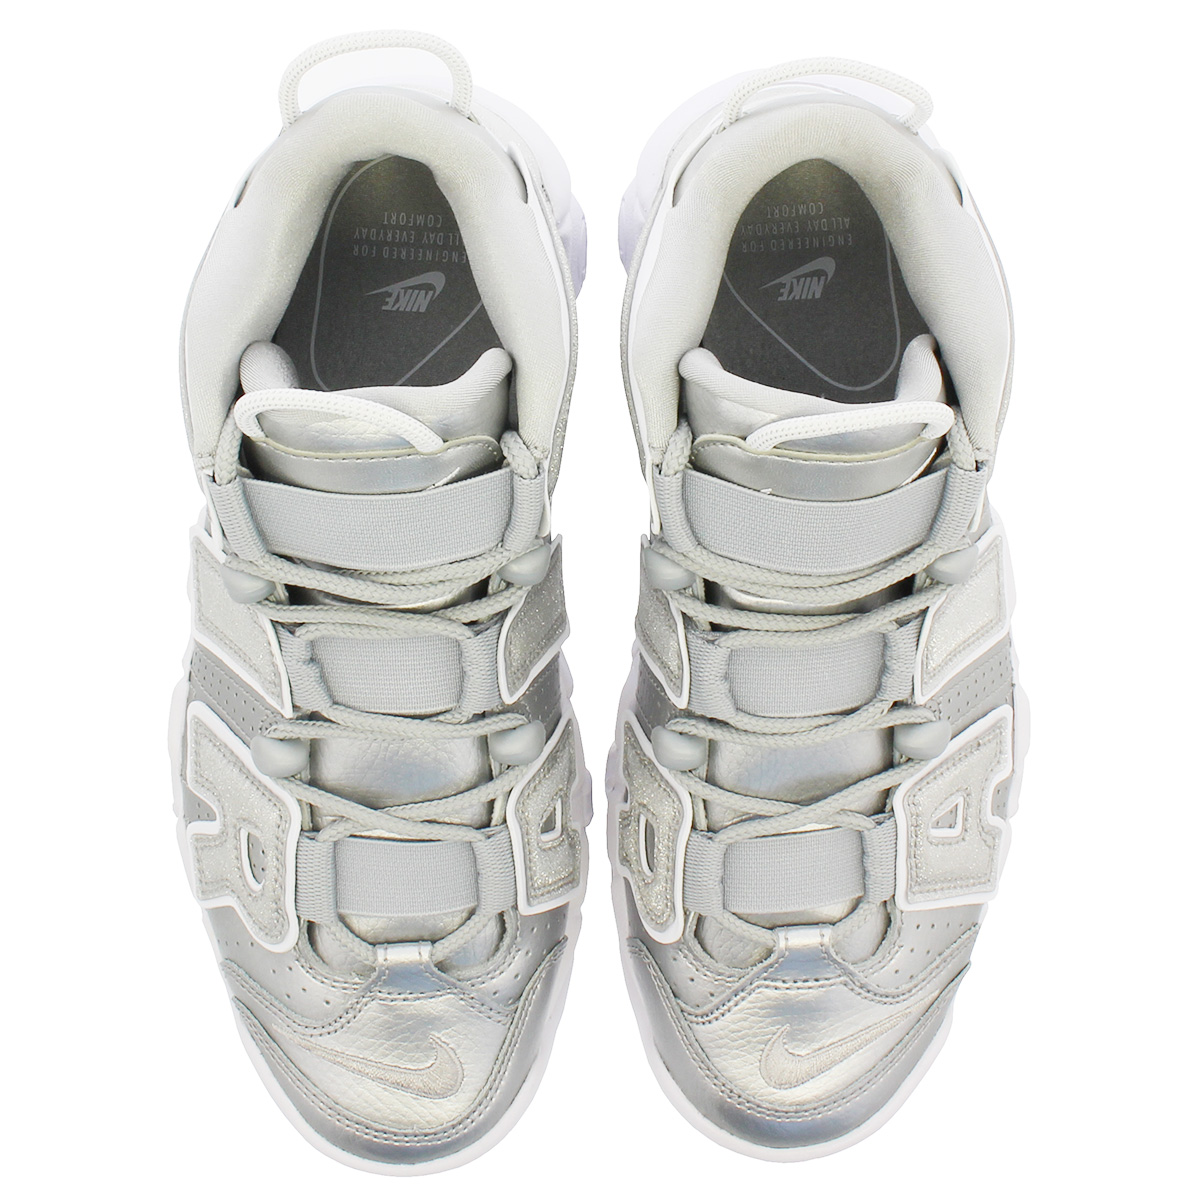 reputable site c81ca 0a731 NIKE WMNS AIR MORE UPTEMPO Nike women air more up tempo METALLIC  SILVER WHITE 917,593-003